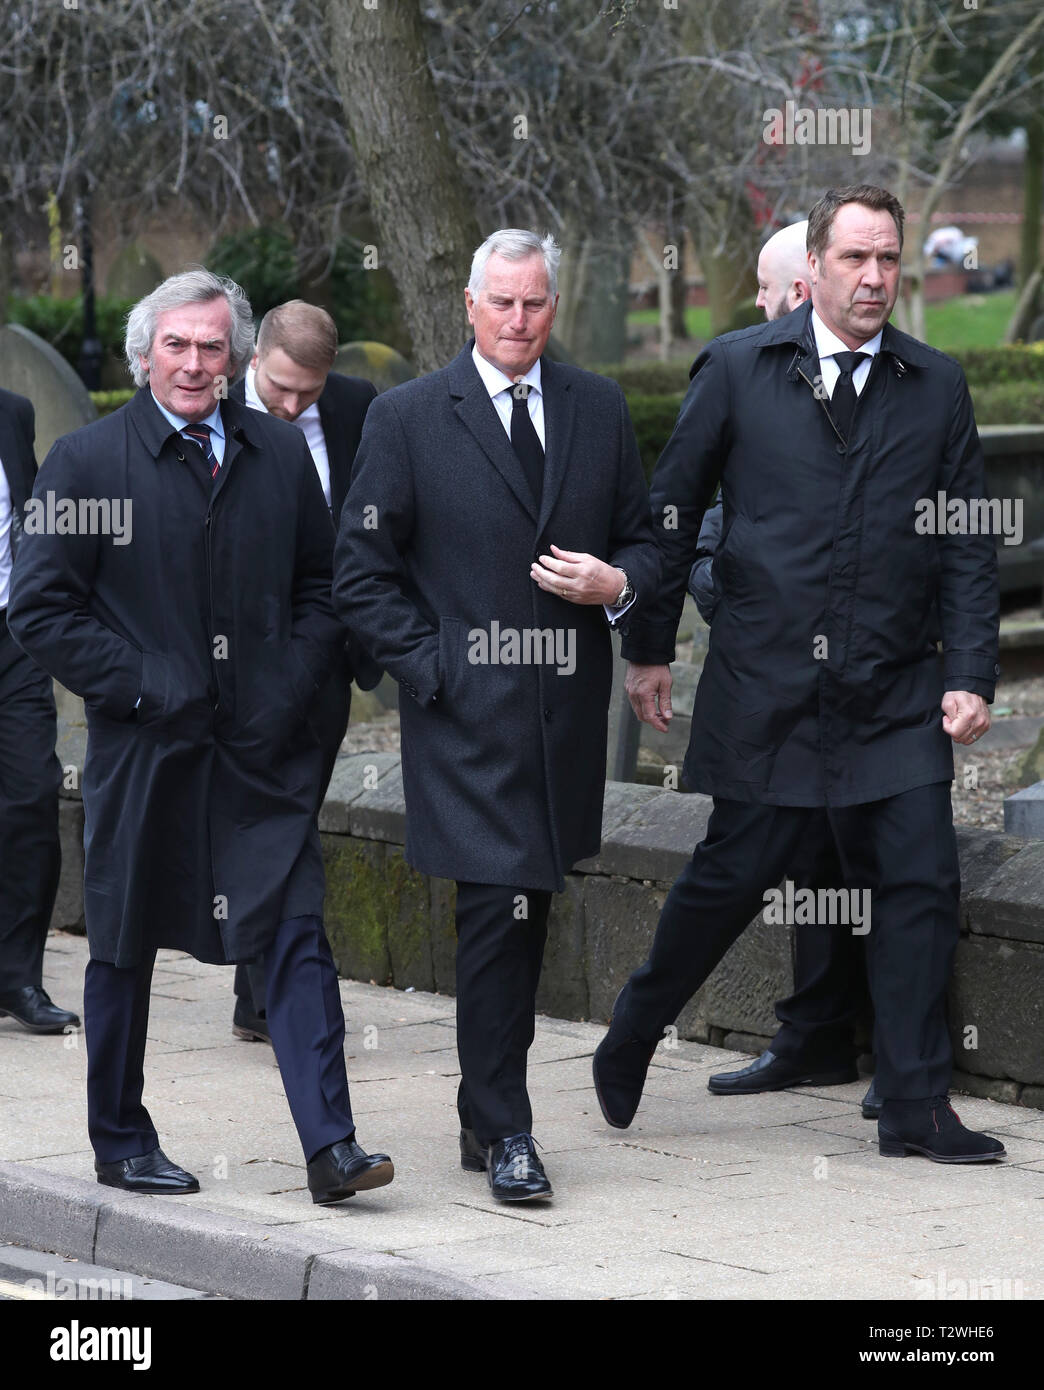 The funeral of England's World Cup winning goalkeeper Gordon Banks at Stoke Minster  Featuring: Pat Jennings, Ray Clemence, David Seaman Where: Stoke-upon-Trent, Staffordshire, United Kingdom When: 04 Mar 2019 Credit: John Rainford/WENN - Stock Image